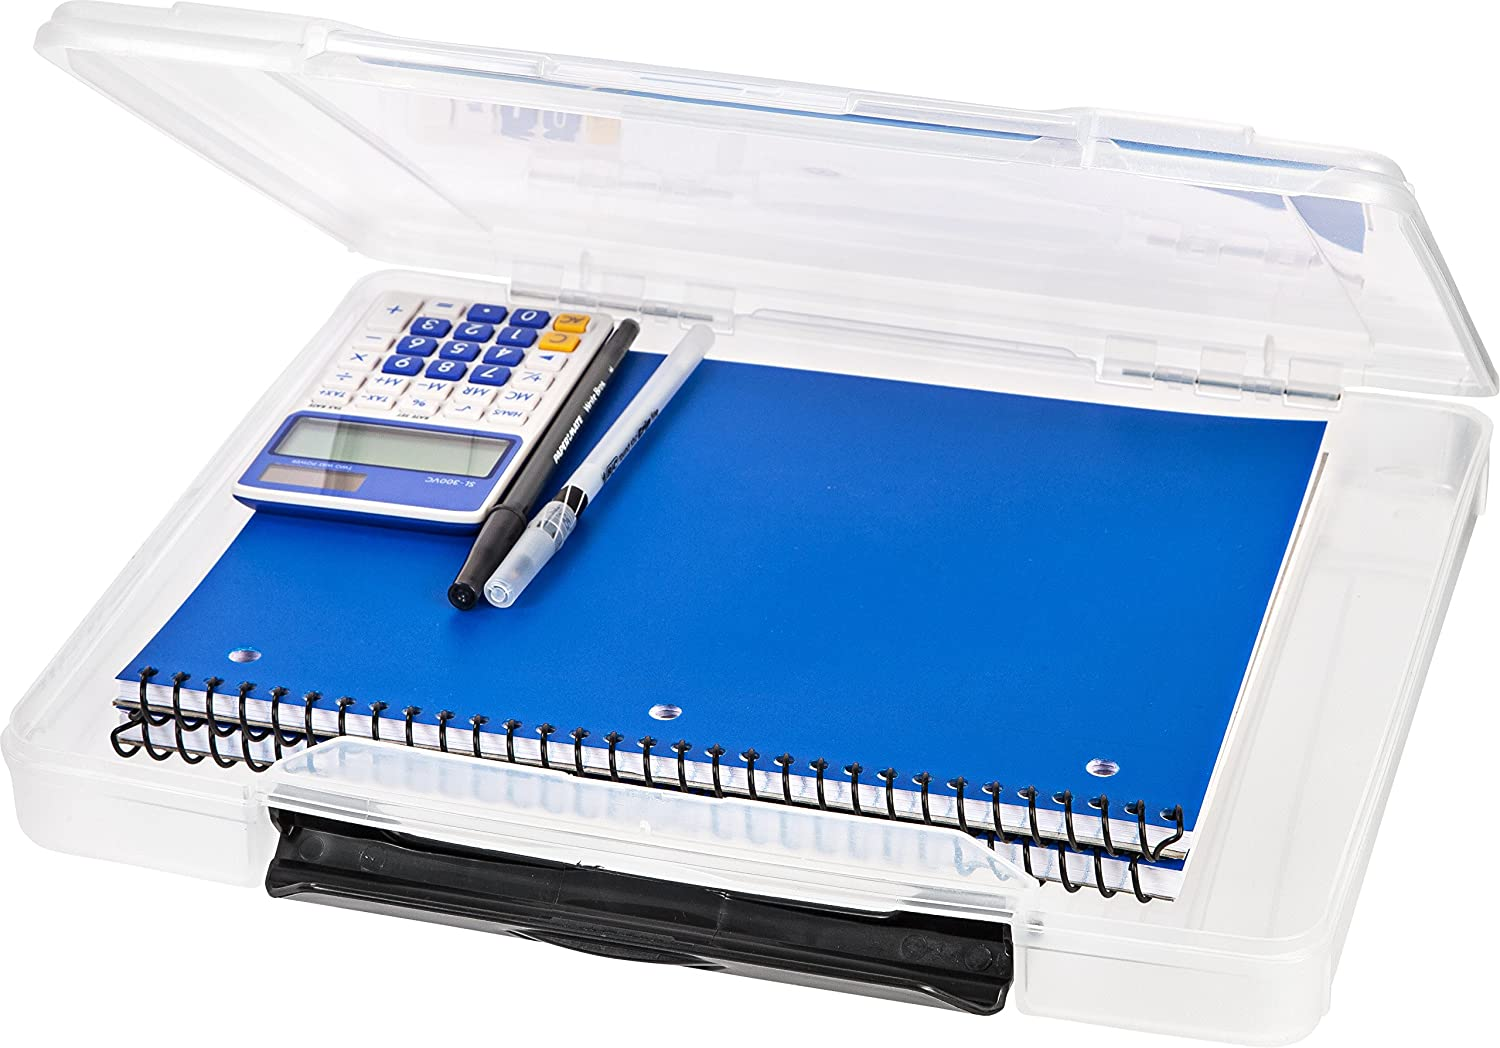 IRIS USA Portable Project Case with Buckle, Clear, 150380, 12-3/4 x 10-19/50 x 1-16/25 Inches